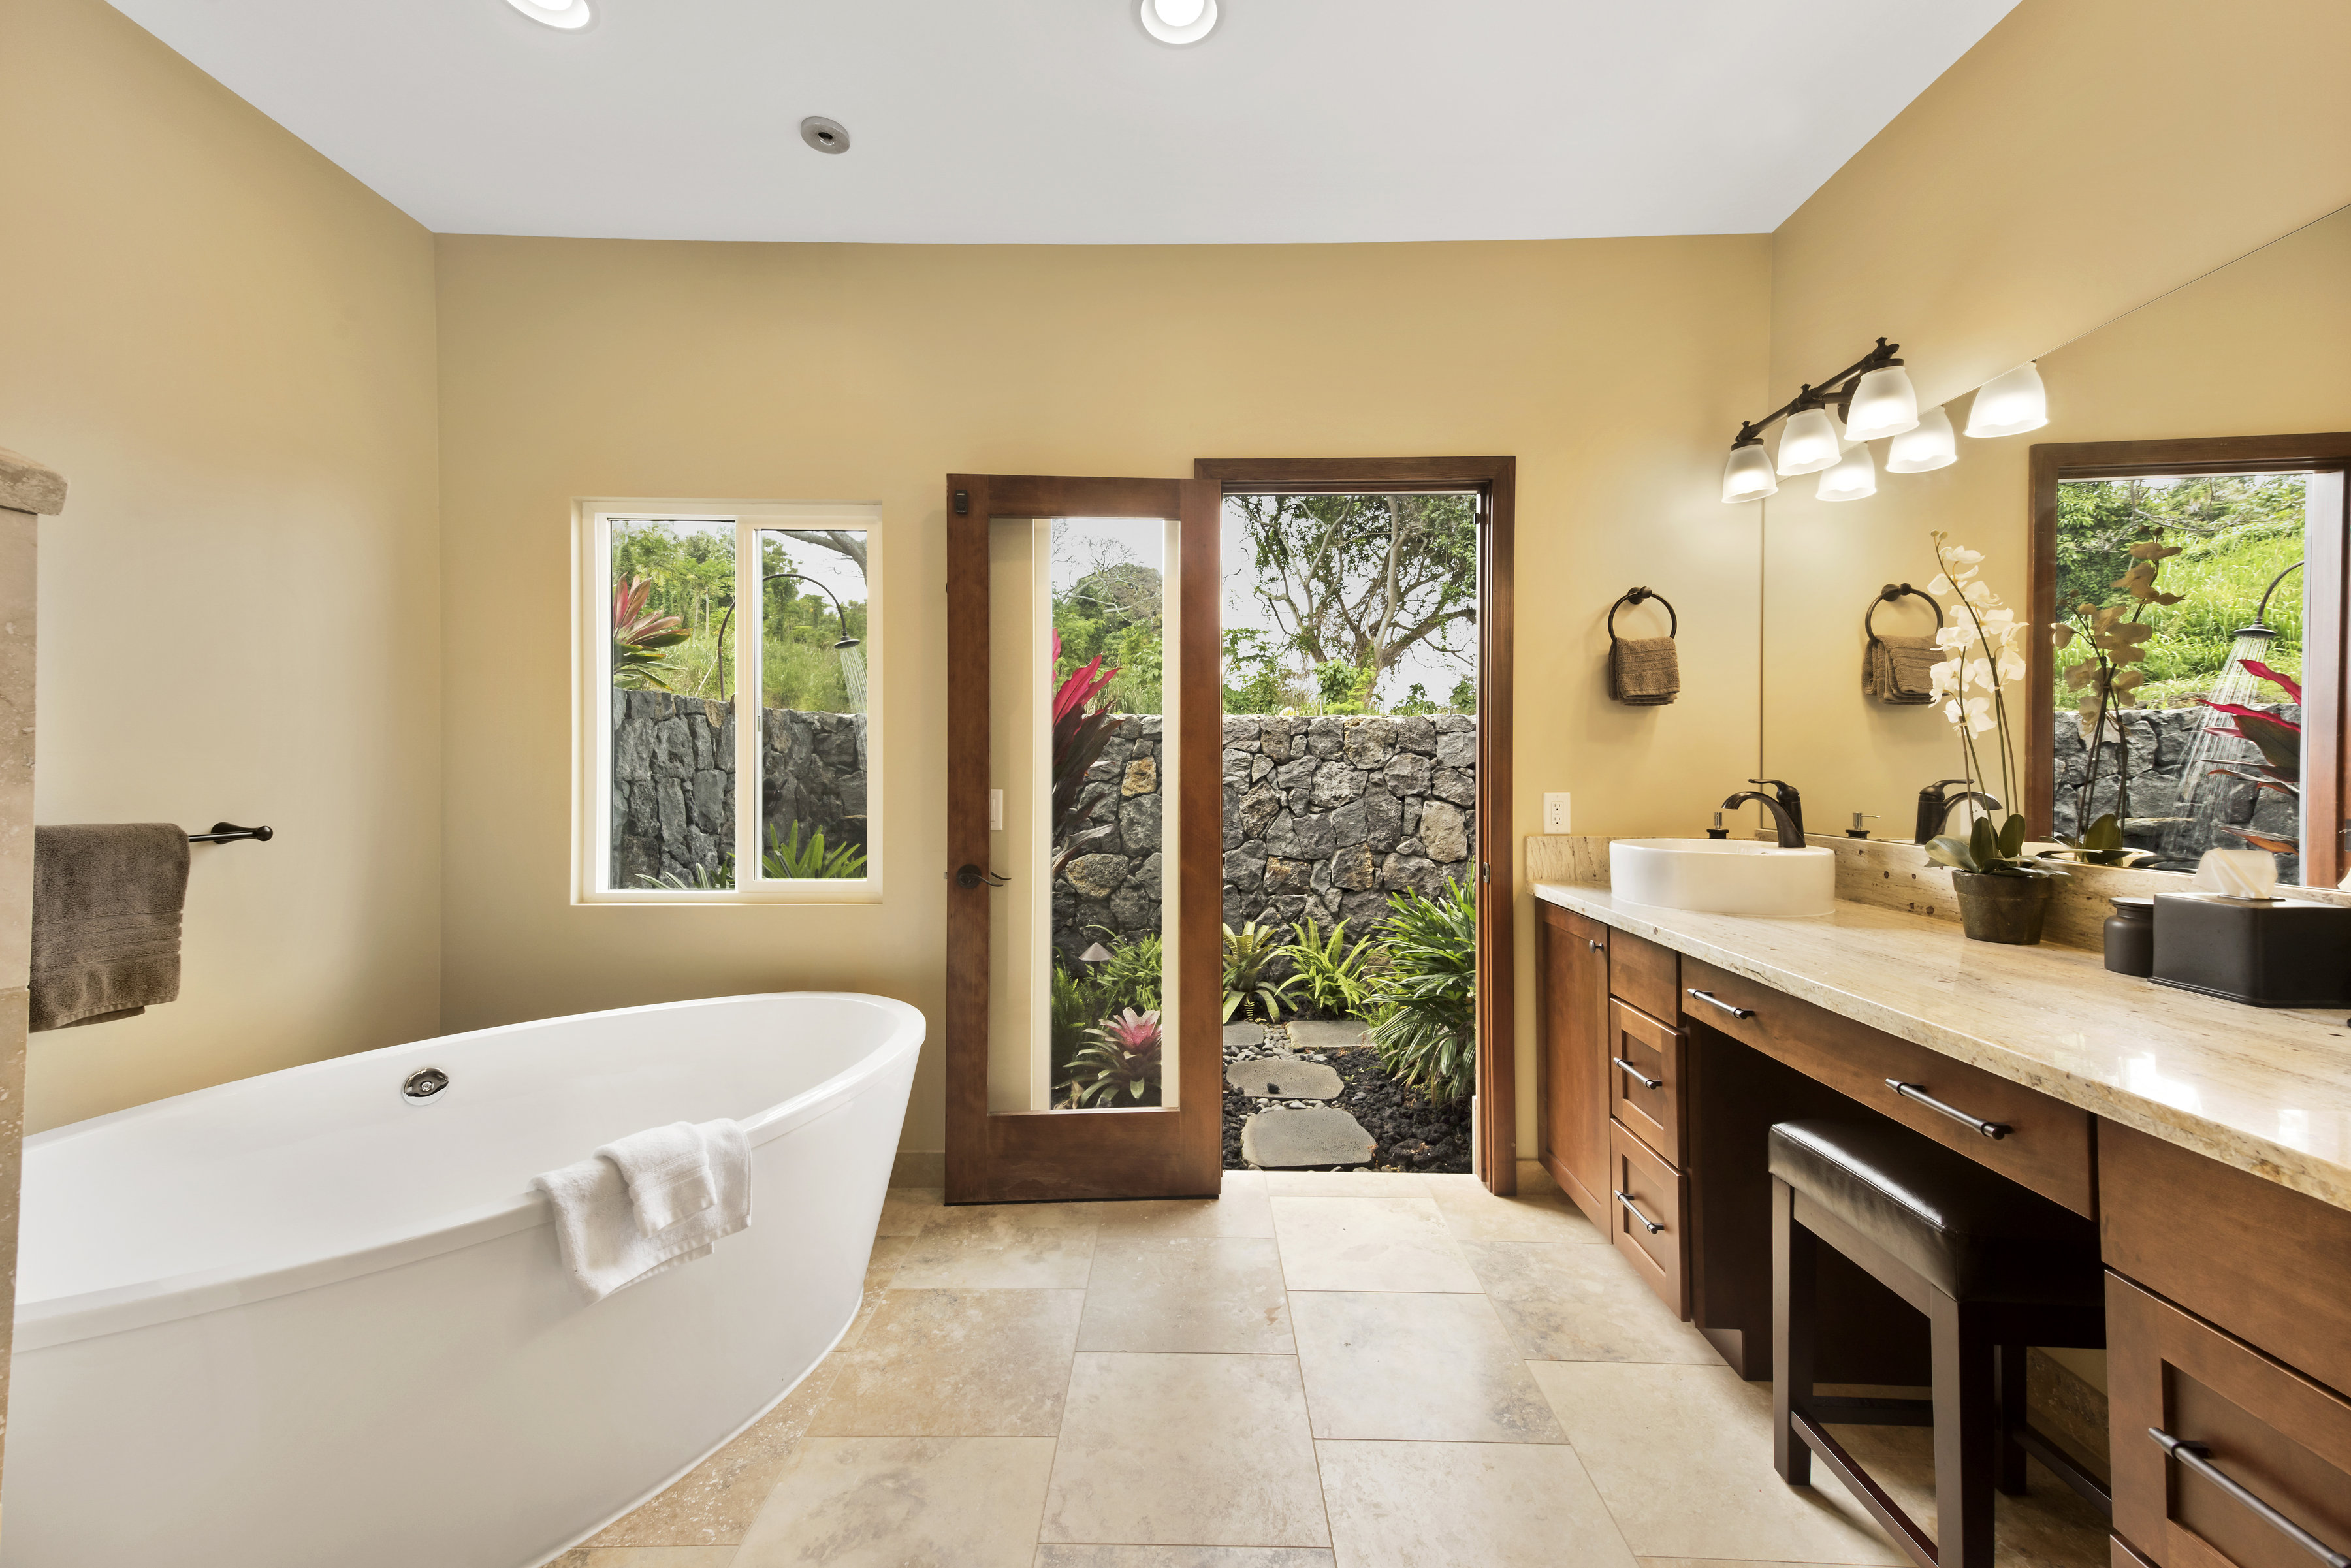 Master bathroom with rain shower head, outdoor shower and tub ceiling filler.